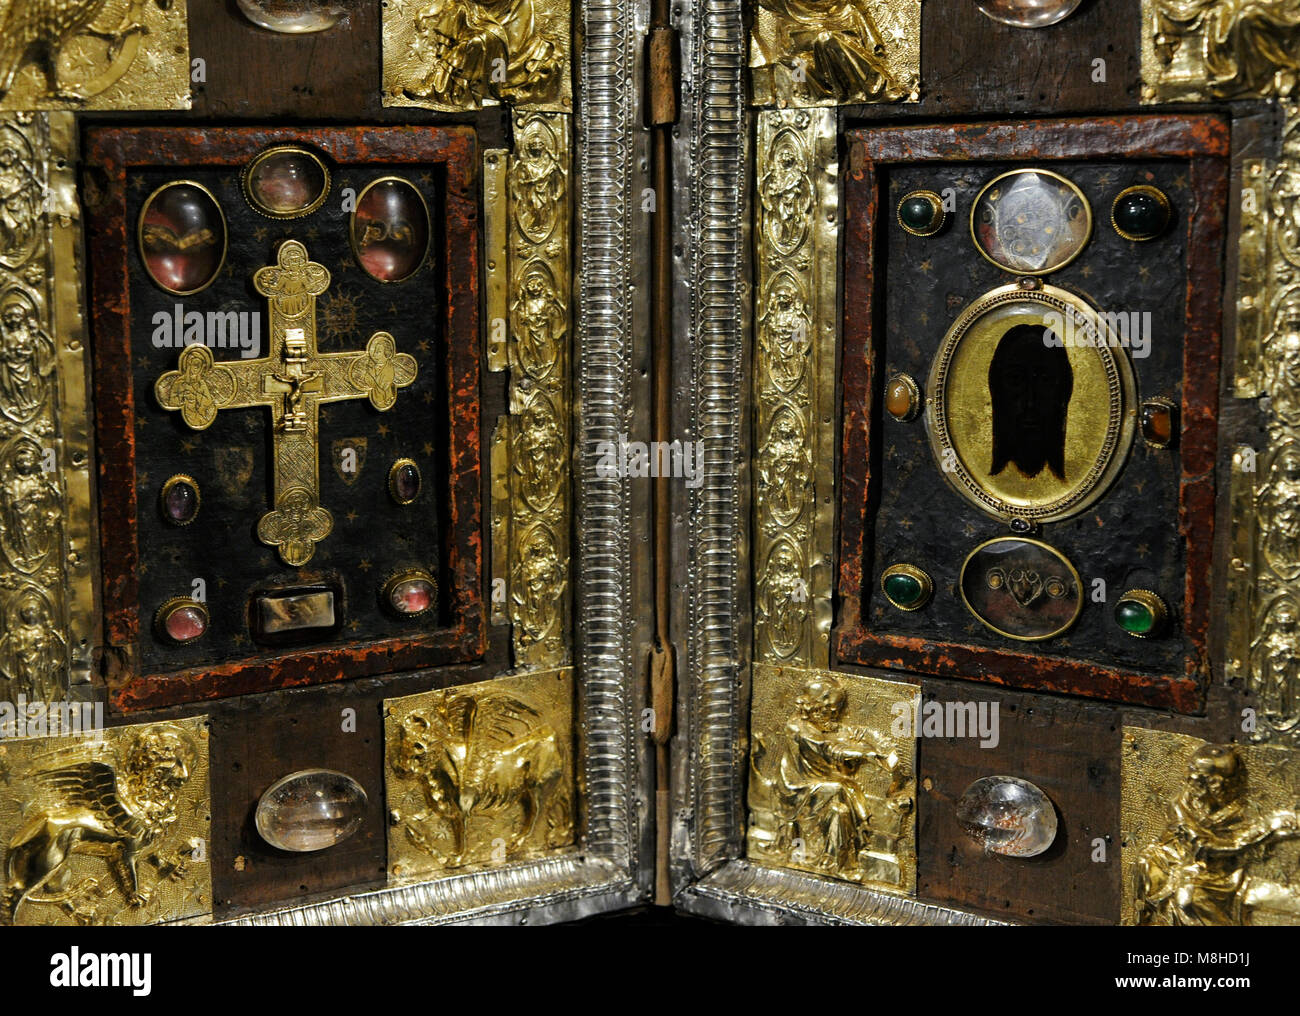 Reliquary Diptych. 14th century with later modifications. Detail. France. Reliefes: silver, repousse and gilded. - Stock Image